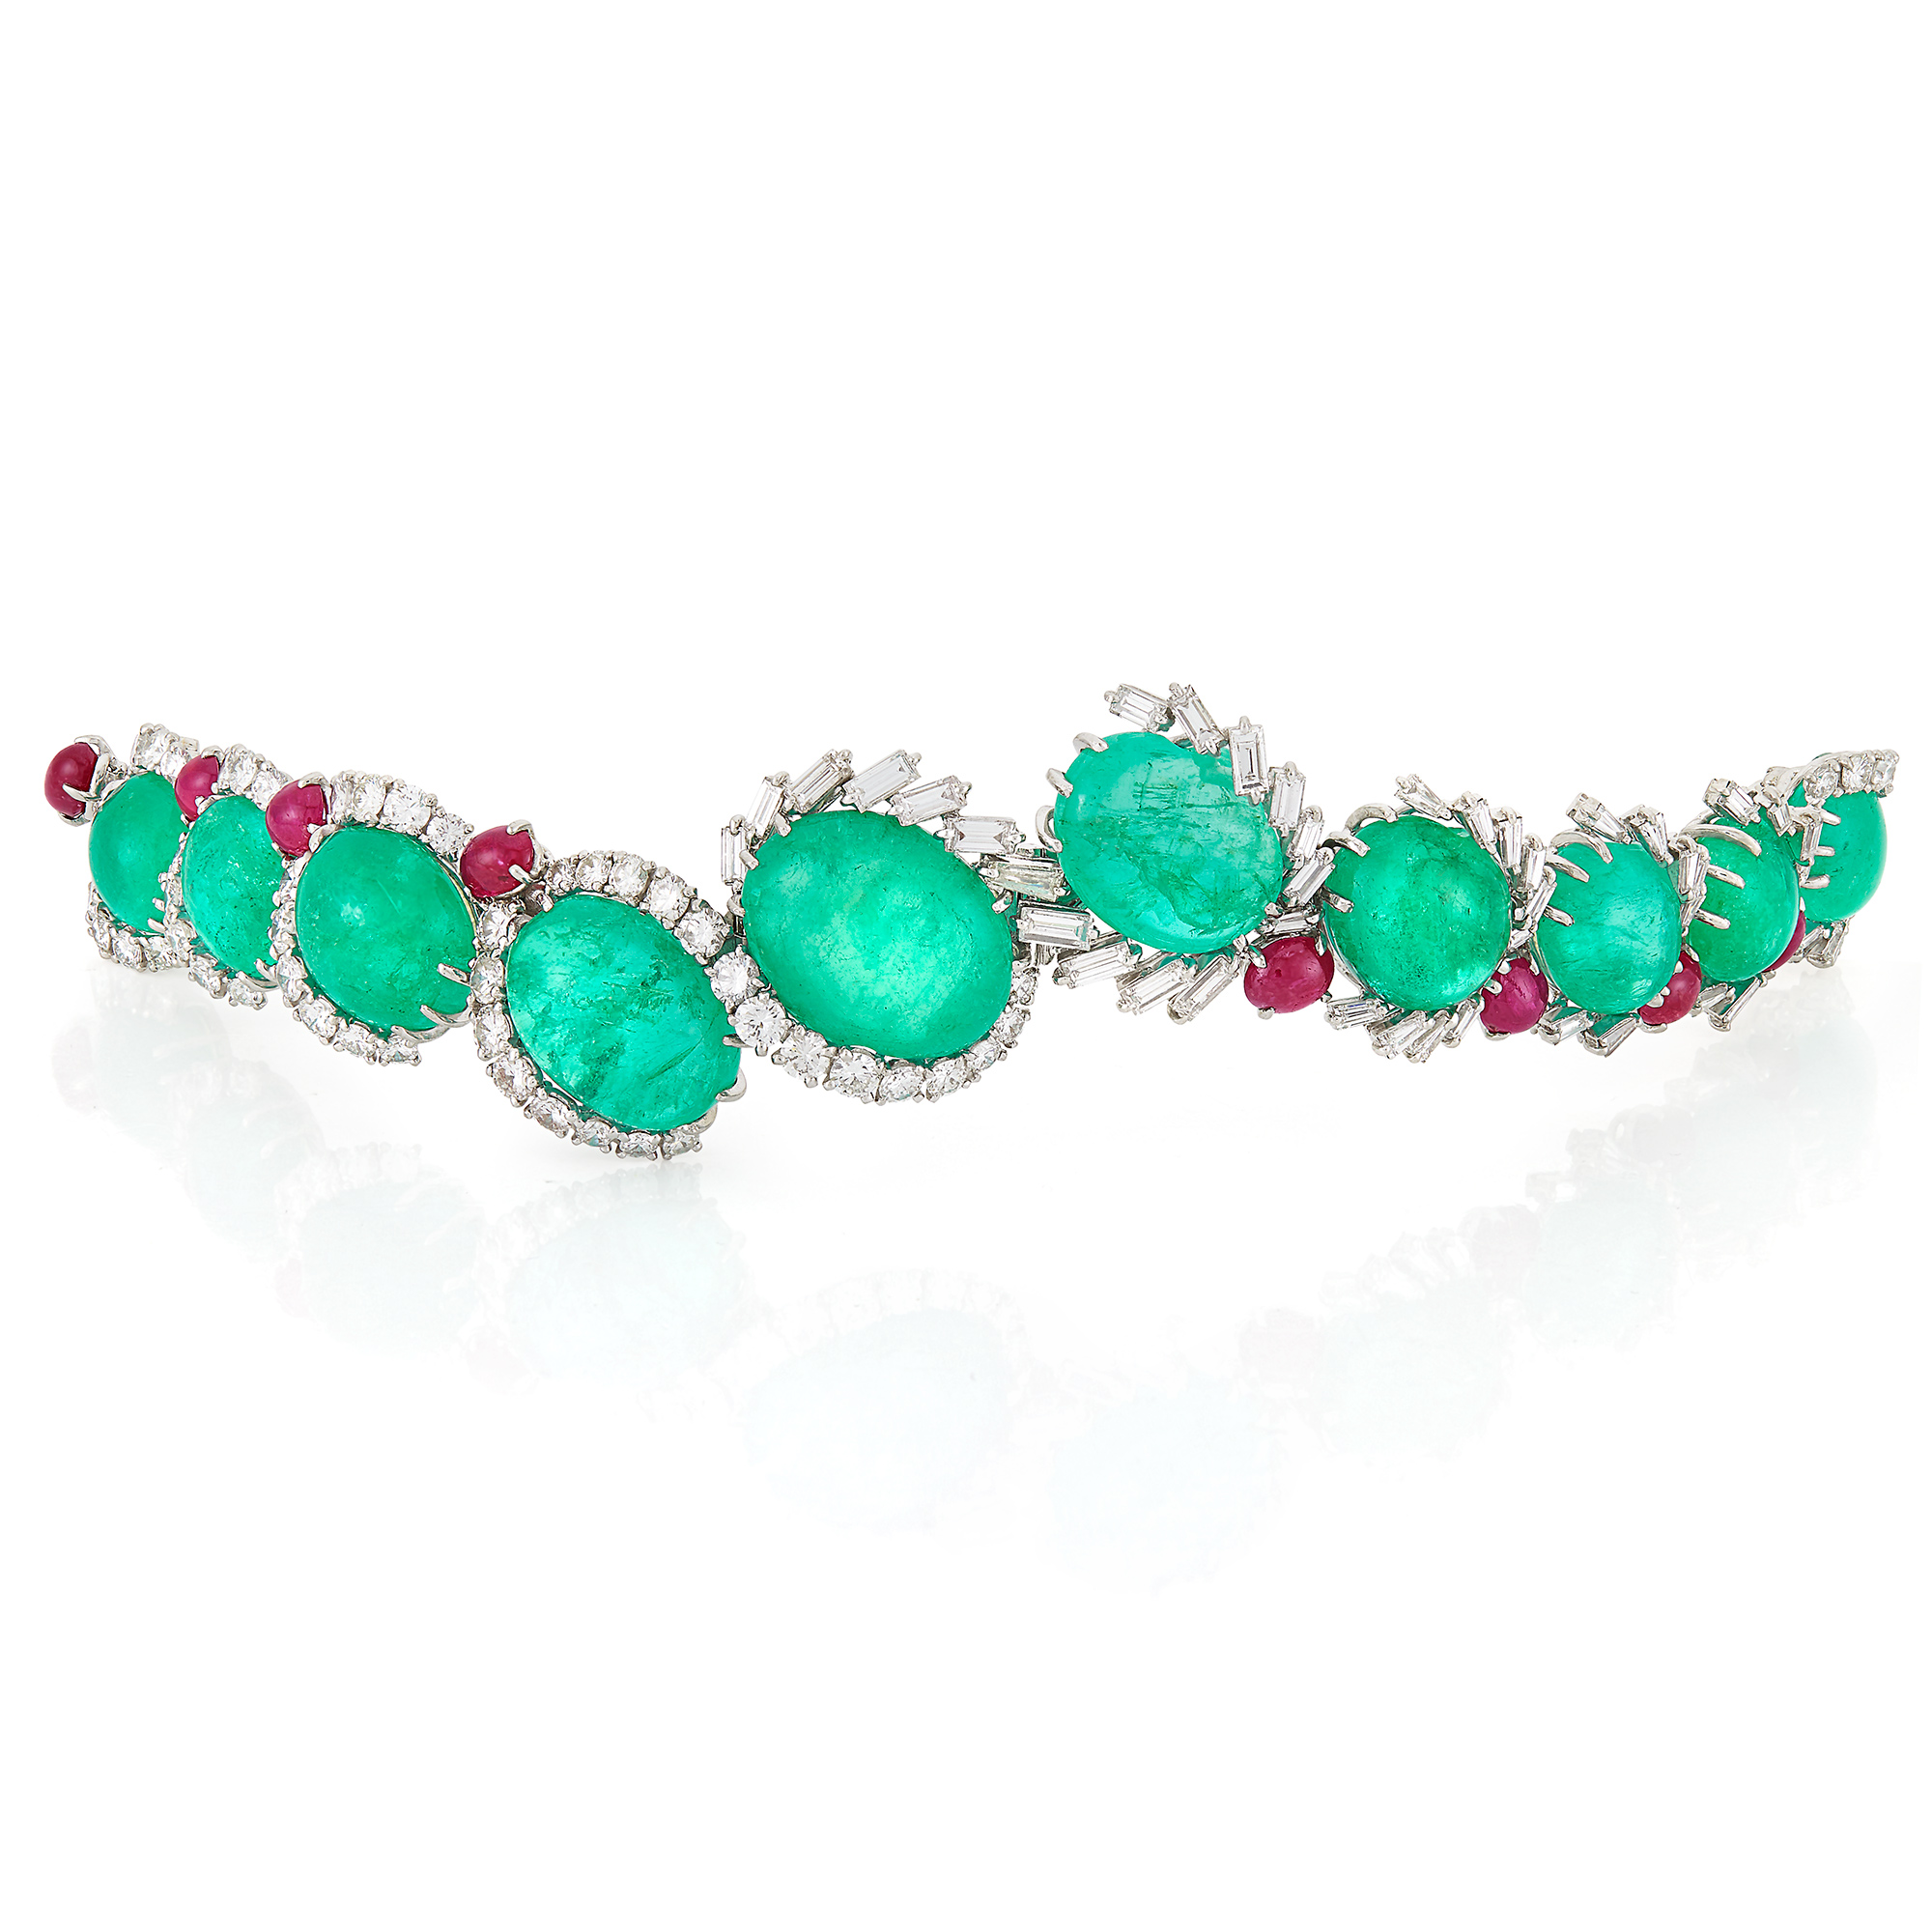 Lot image - Platinum, Cabochon Emerald and Ruby and Diamond Bracelet, Cartier, France